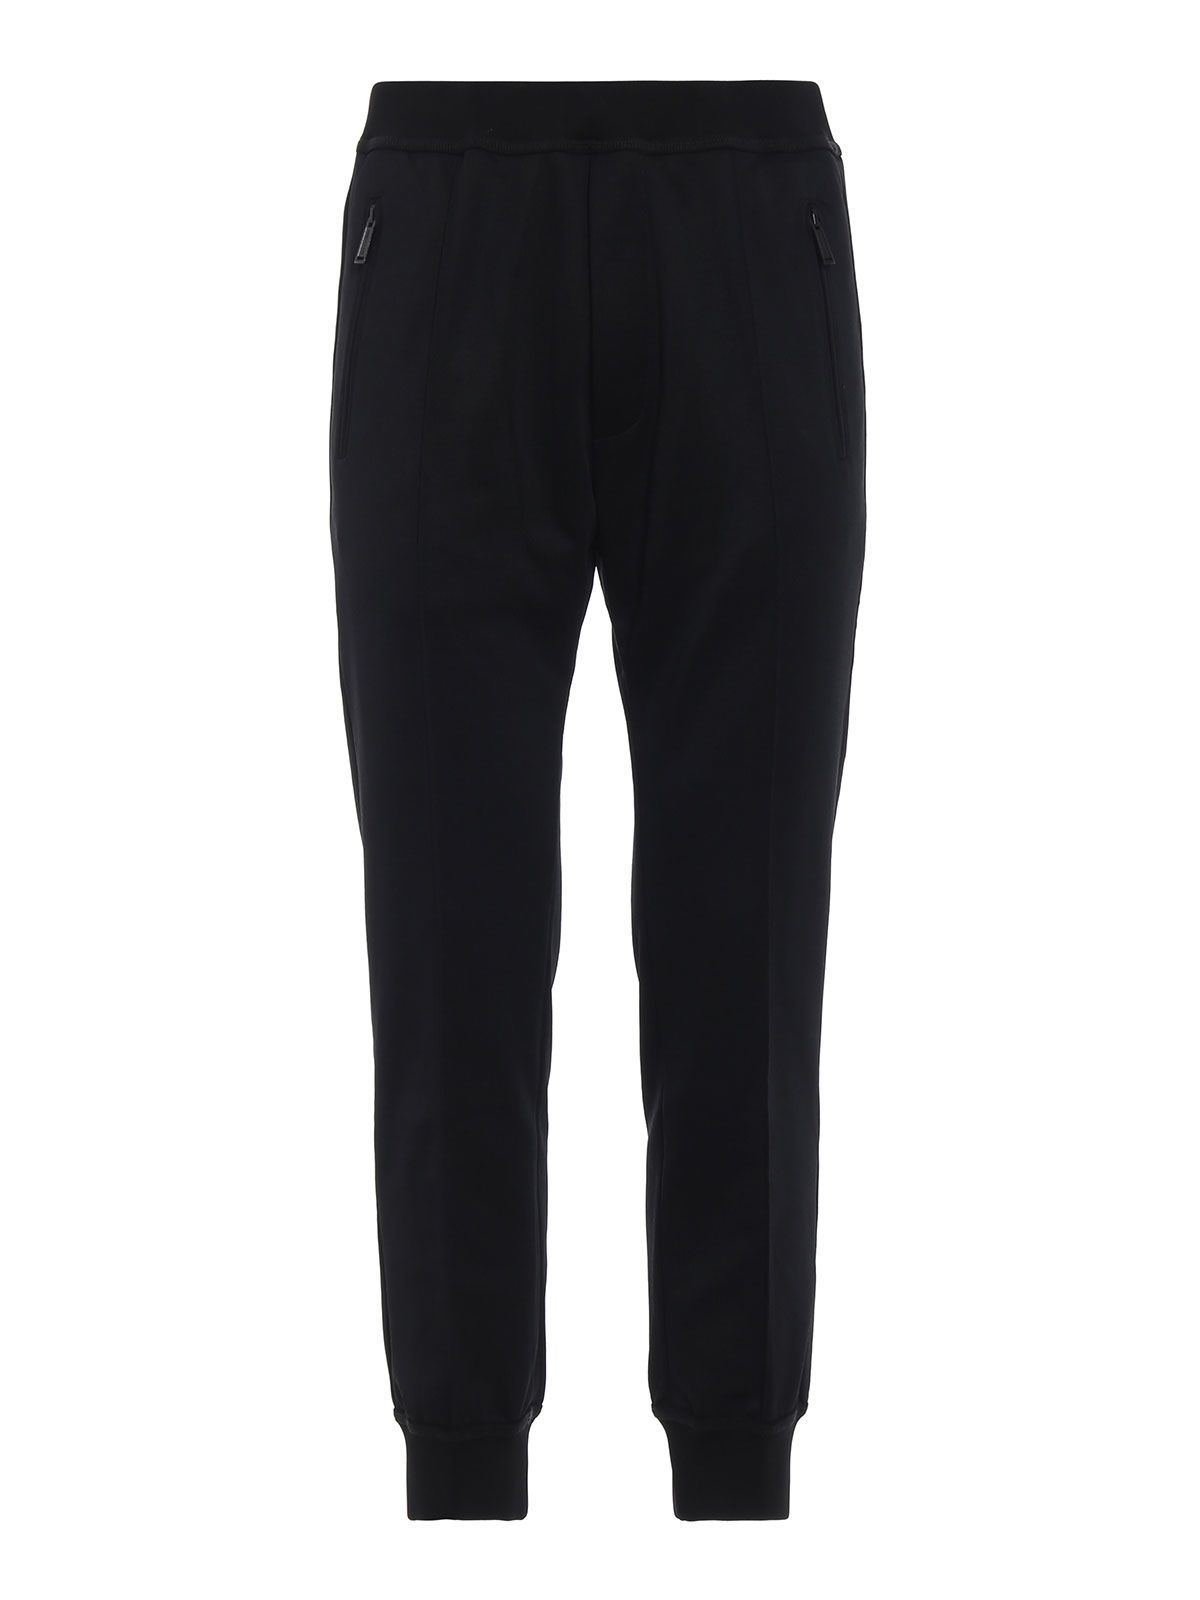 Dsquared2 Glossy Cotton Blend Black Sweatpants